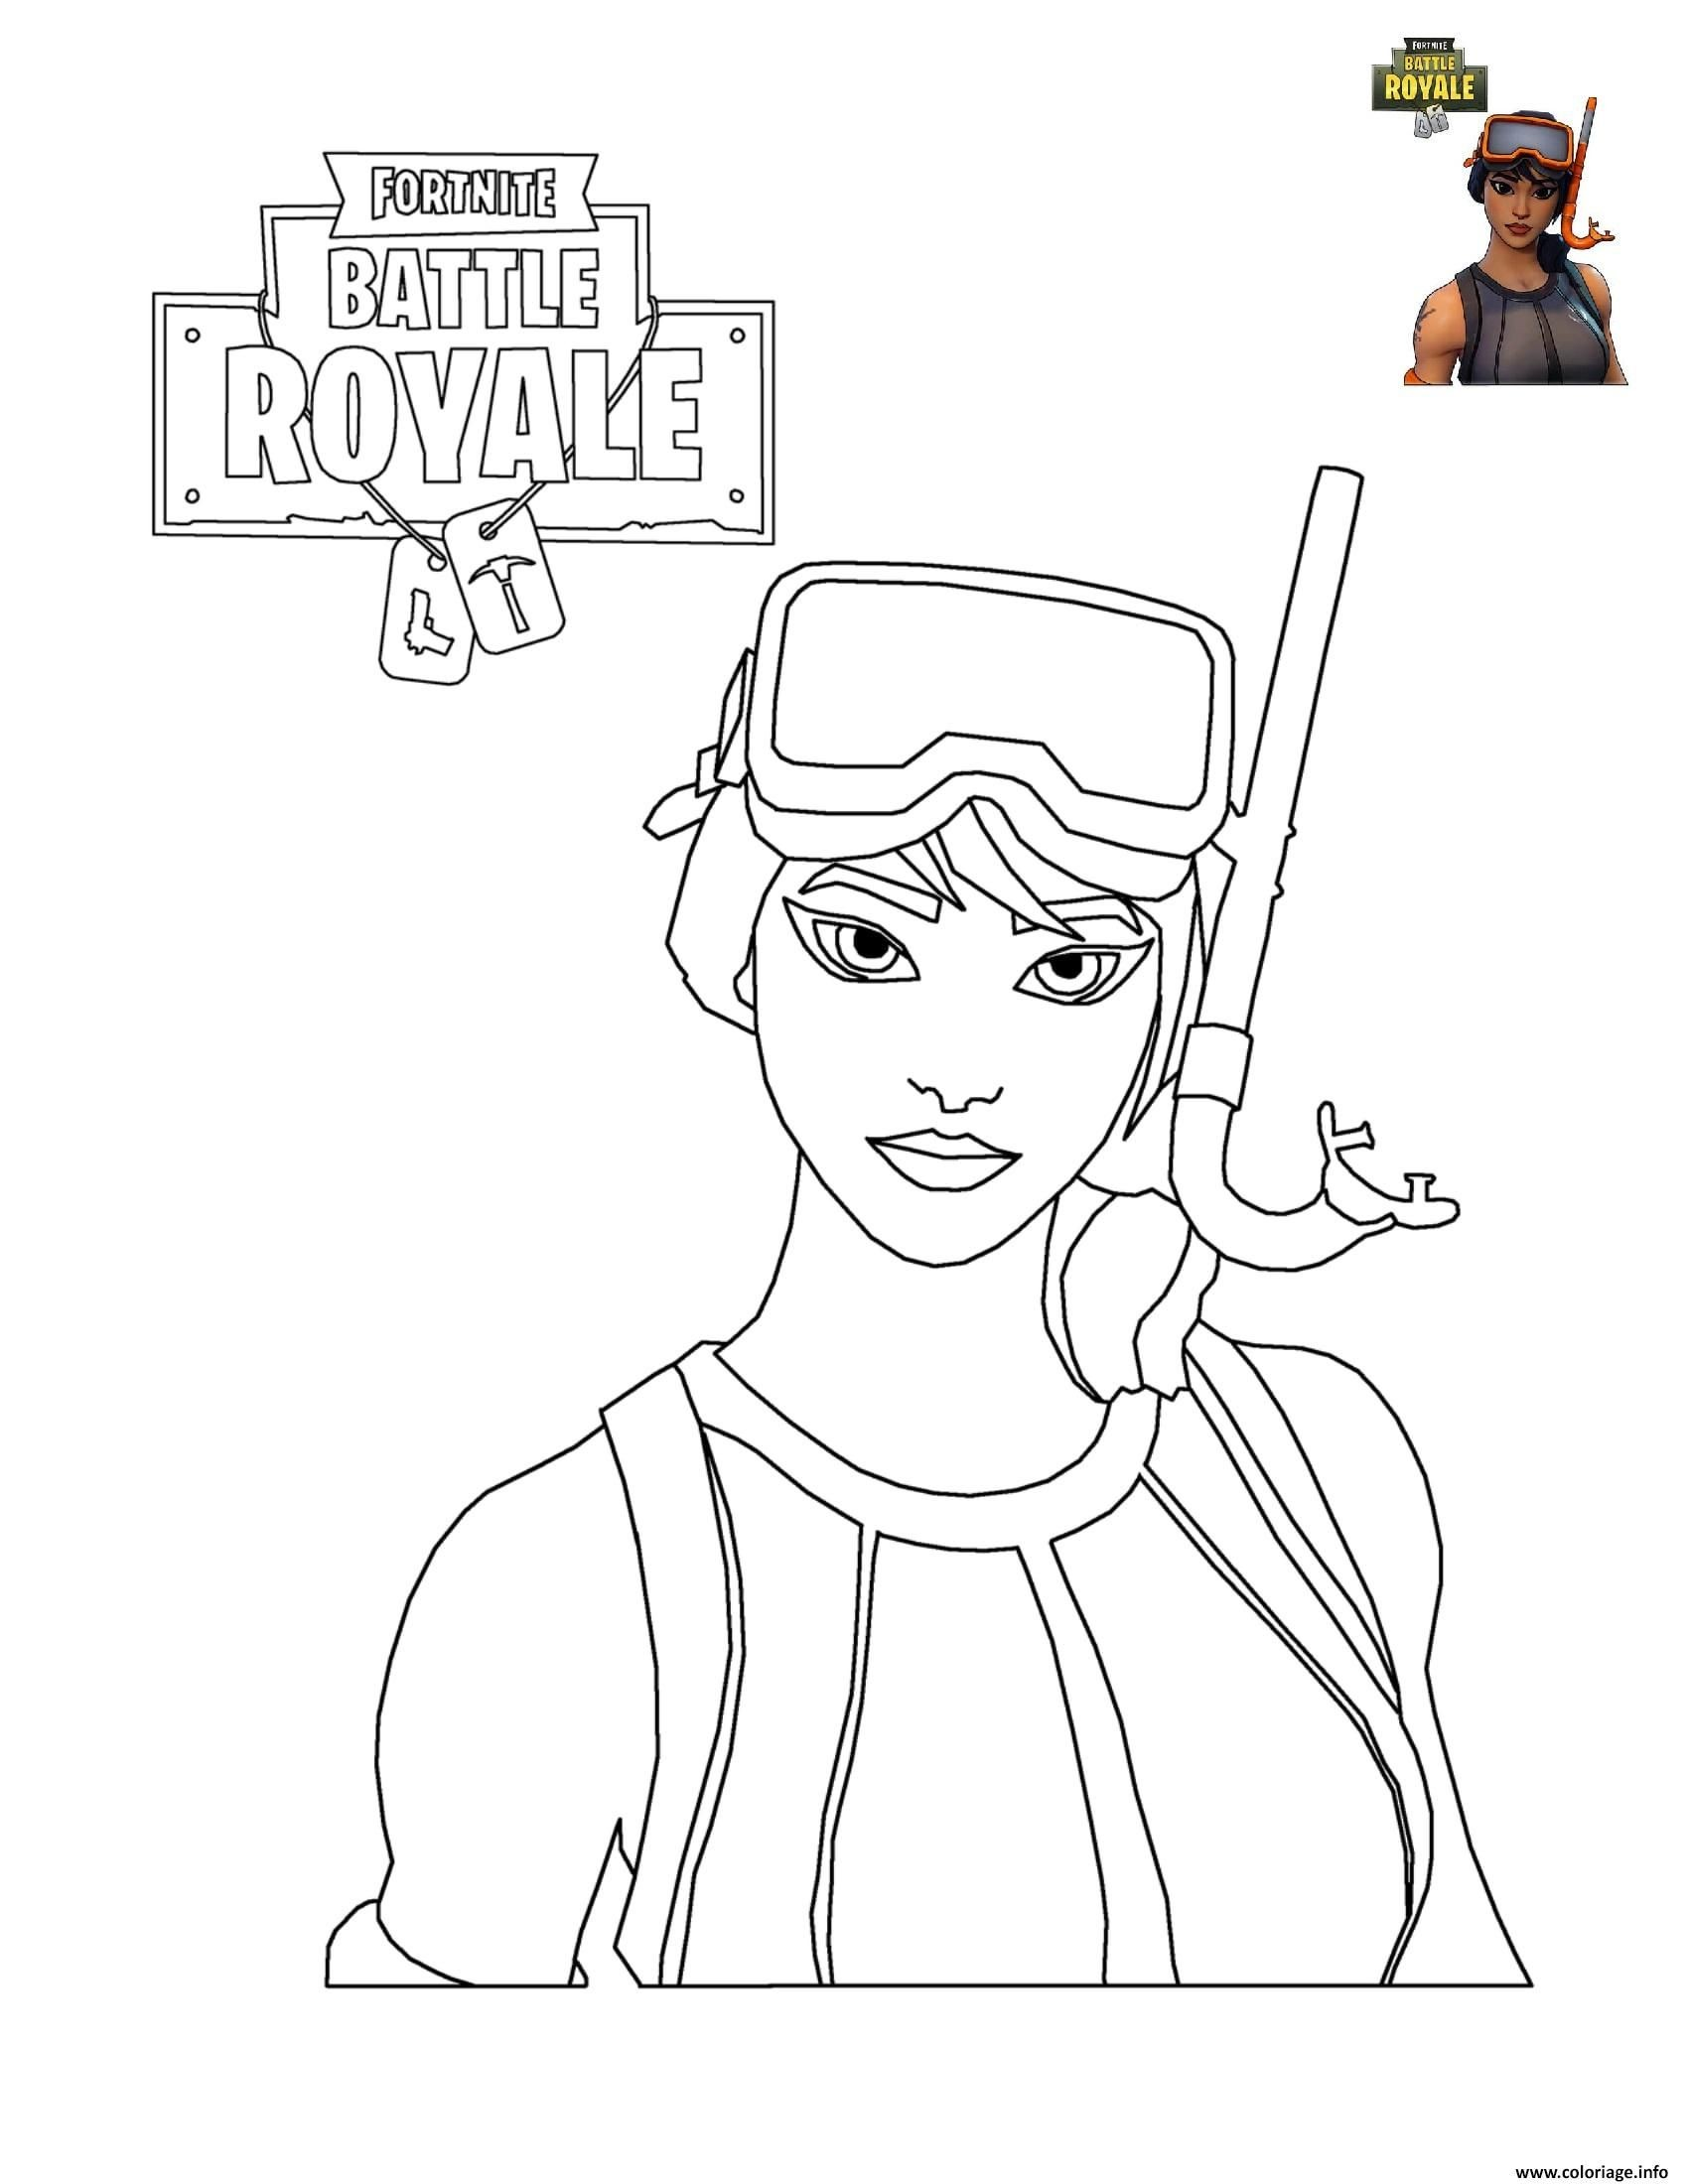 Coloriage De fortnite A Imprimer Gratuitement Inspirational Coloriage fortnite Battle Royale Personnage 7   Imprimer Of Coloriage De fortnite A Imprimer Gratuitement